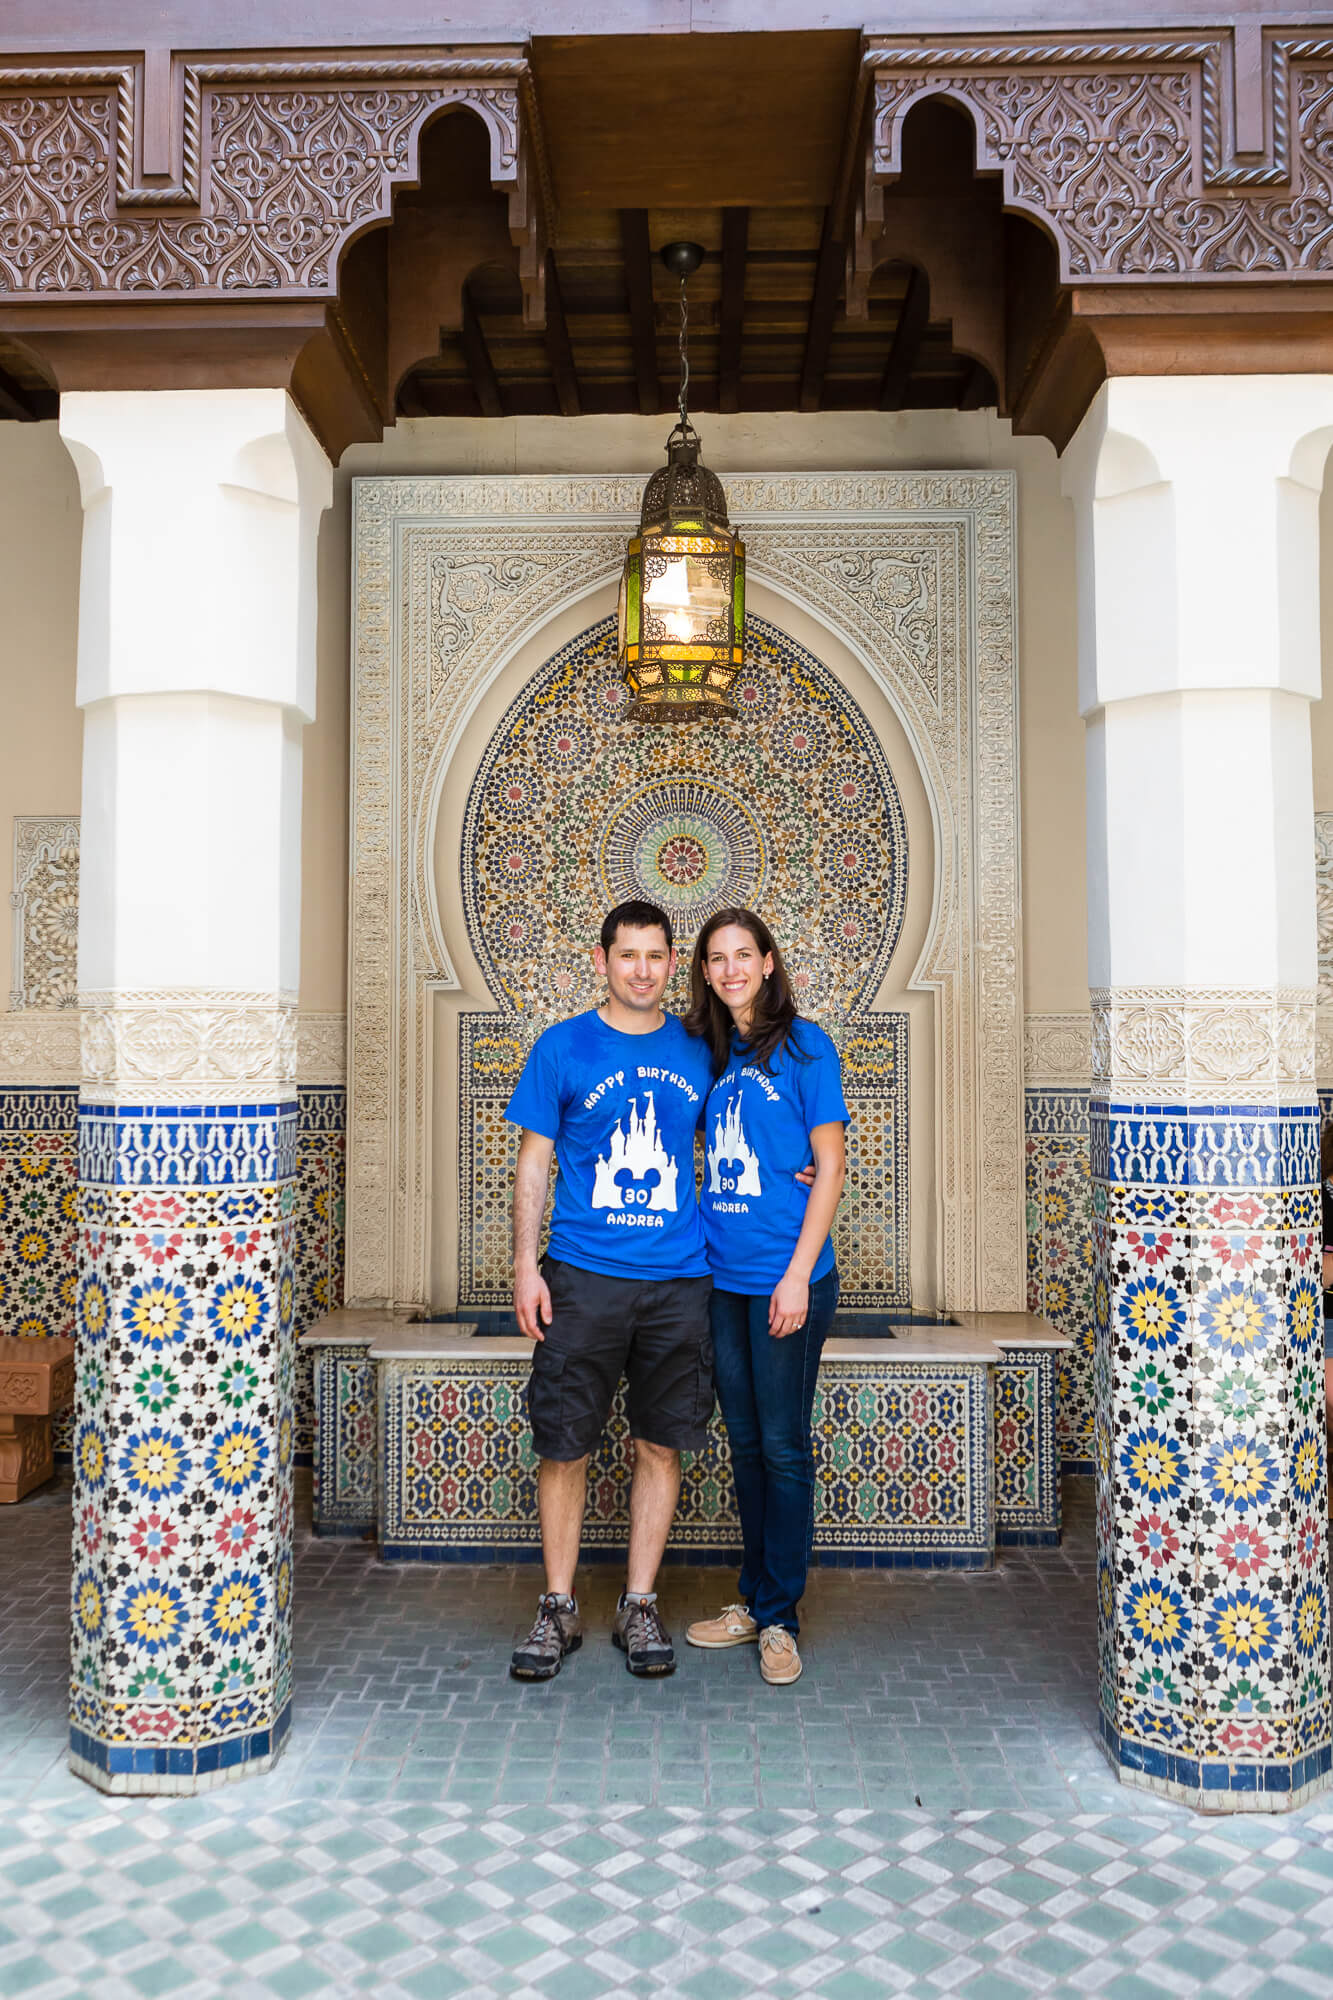 Jose and Andrea's proposal photos at epcot